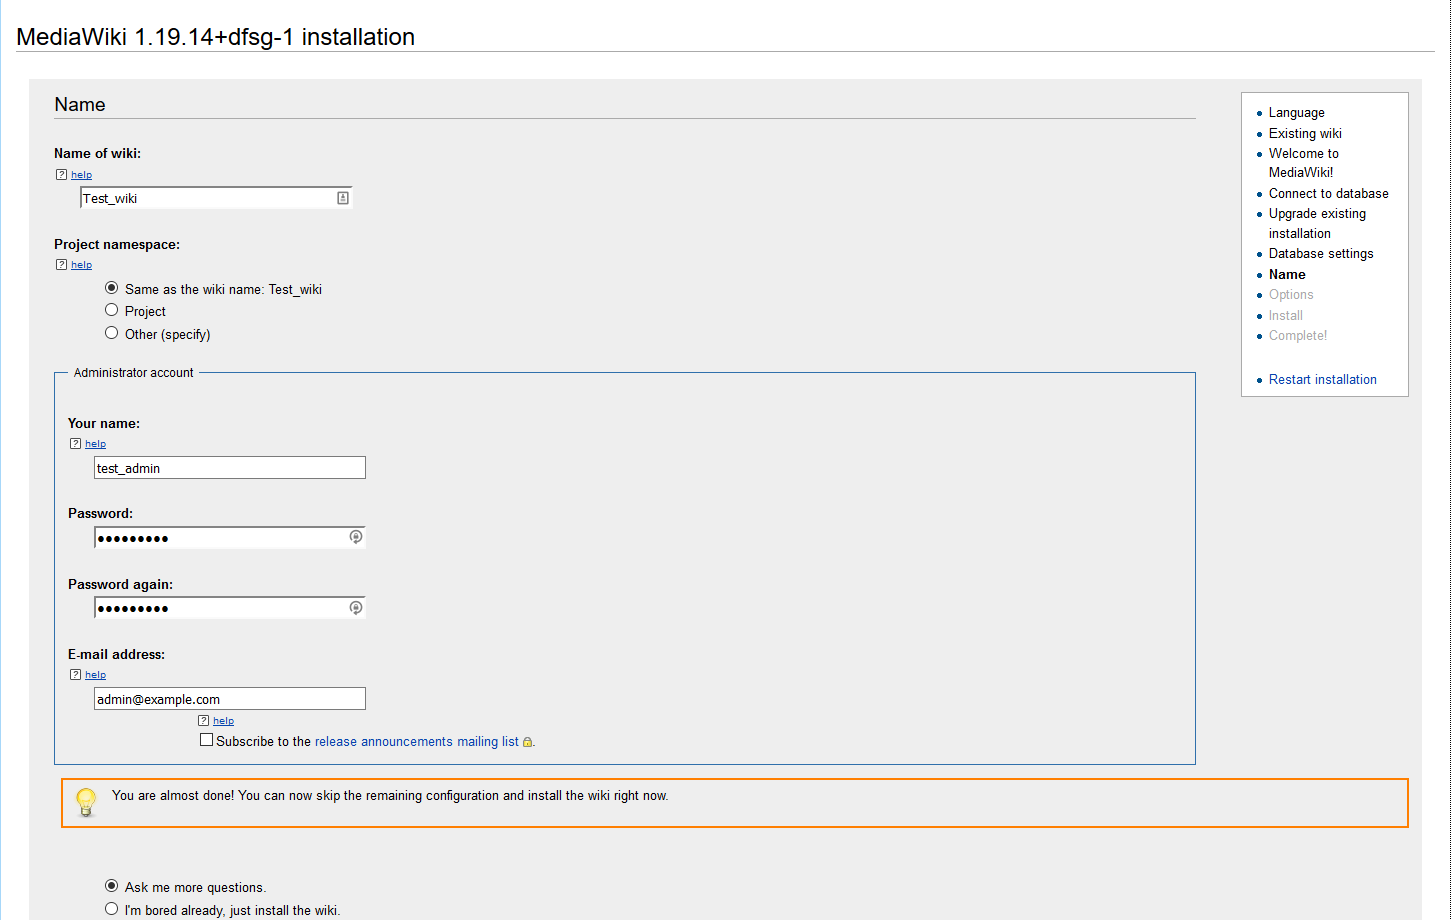 MediaWiki installation: administration settings